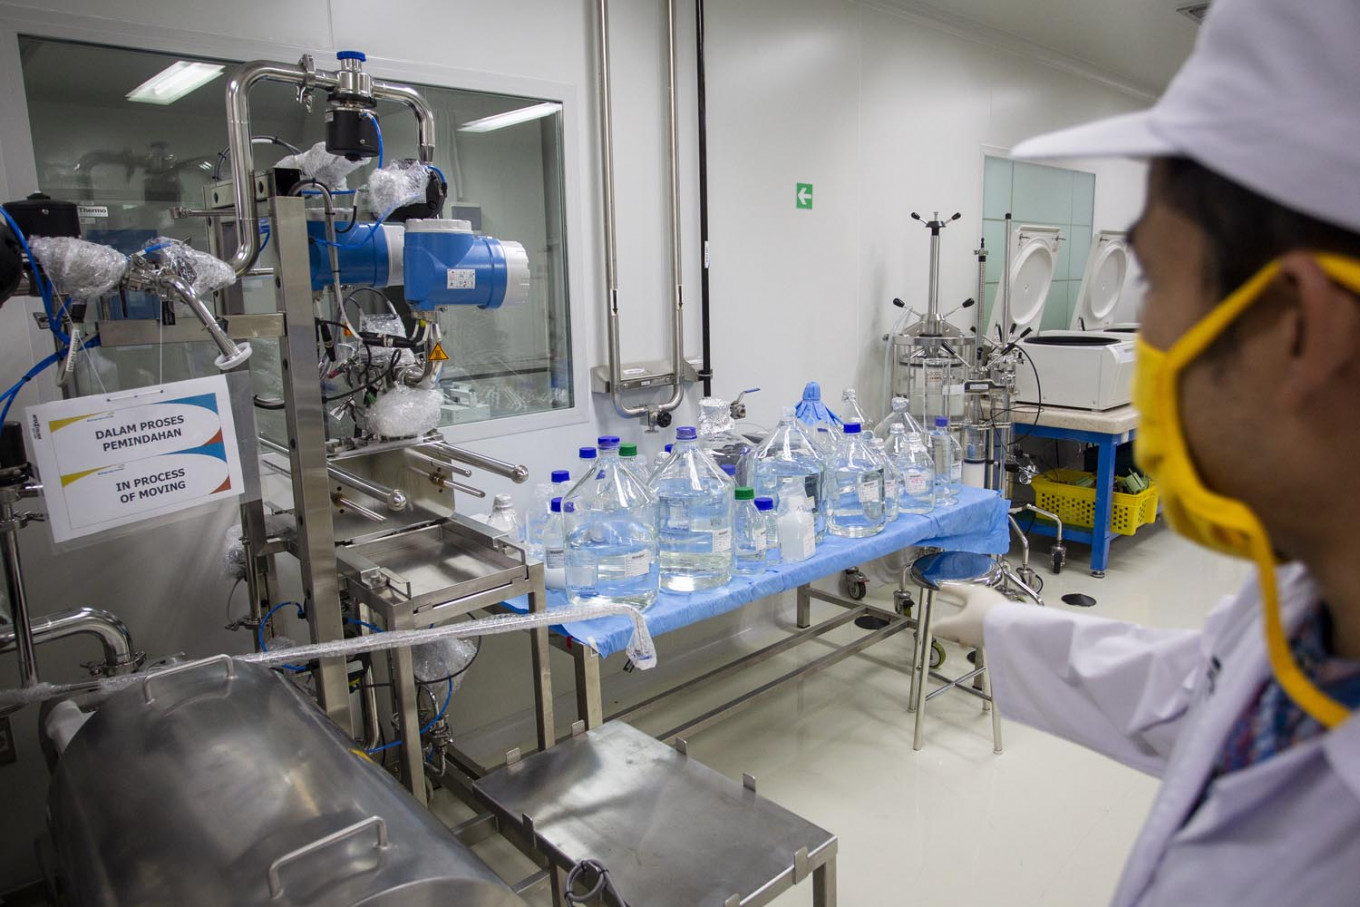 BPOM drafts accelerated 'road map' for Merah Putih vaccine production by 2021